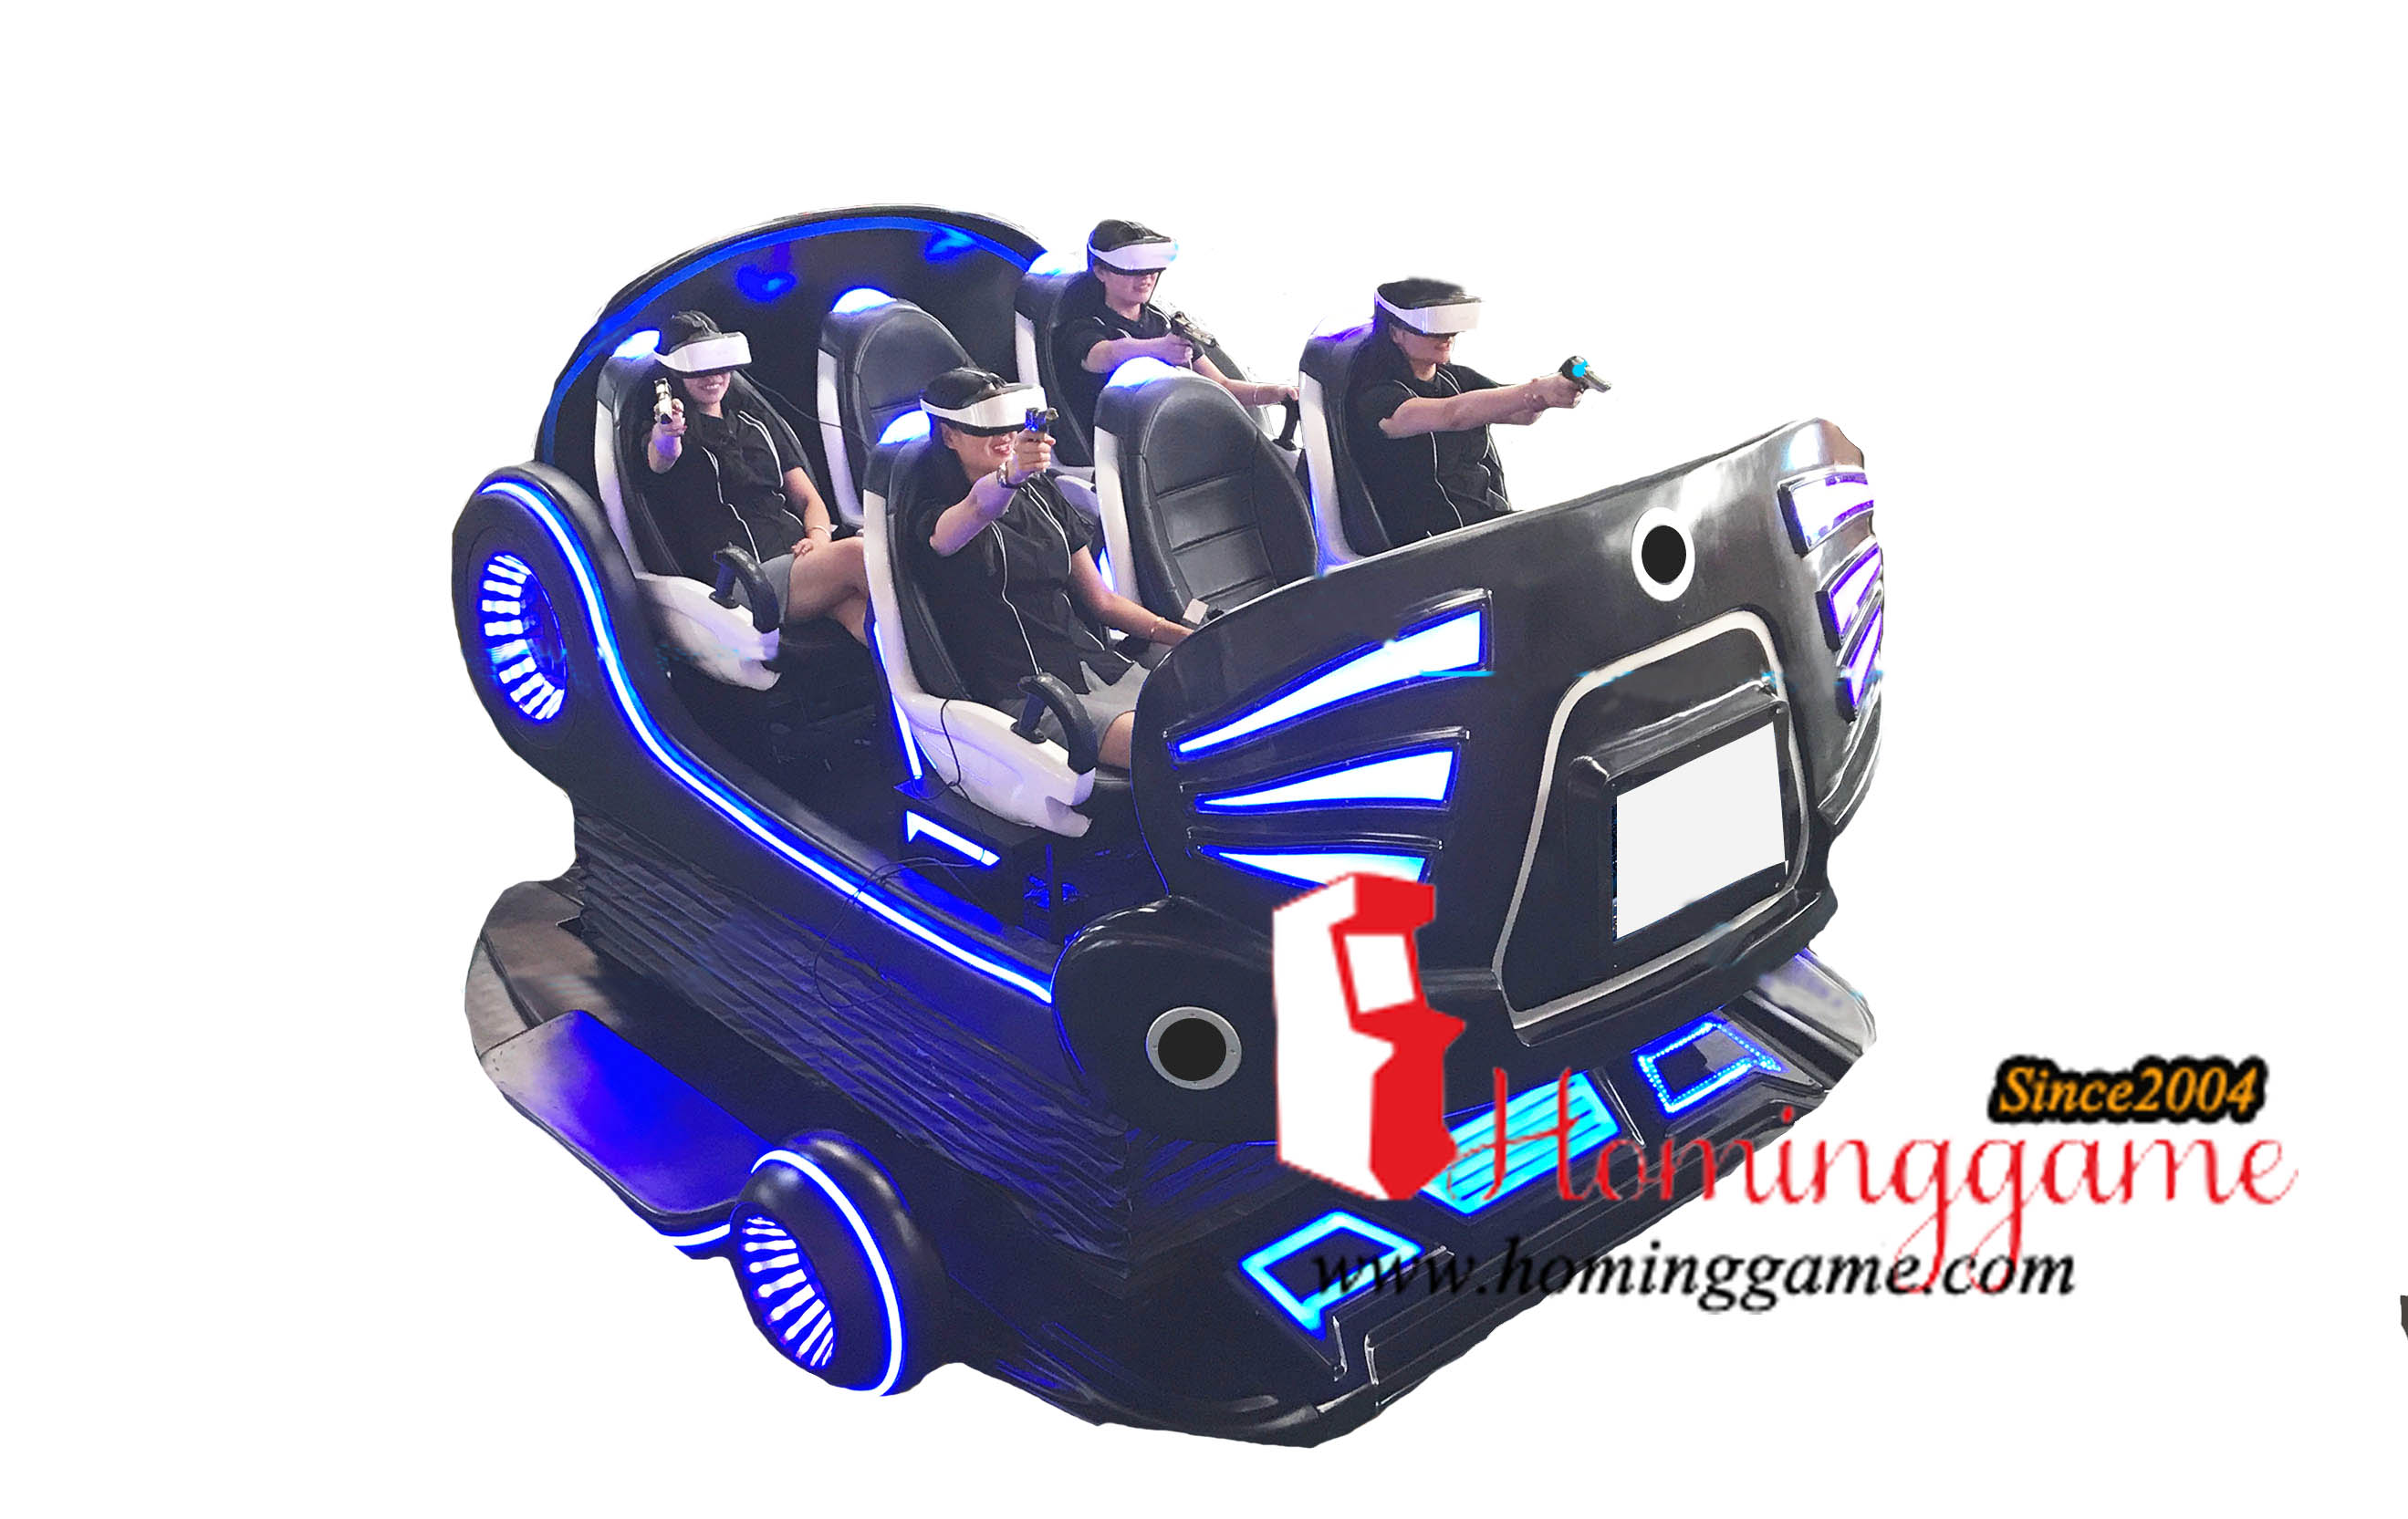 2018 Hot 6 Seats 9D VR Cineam Theater|6 Seat 9D VR Cinema|9D VR Game